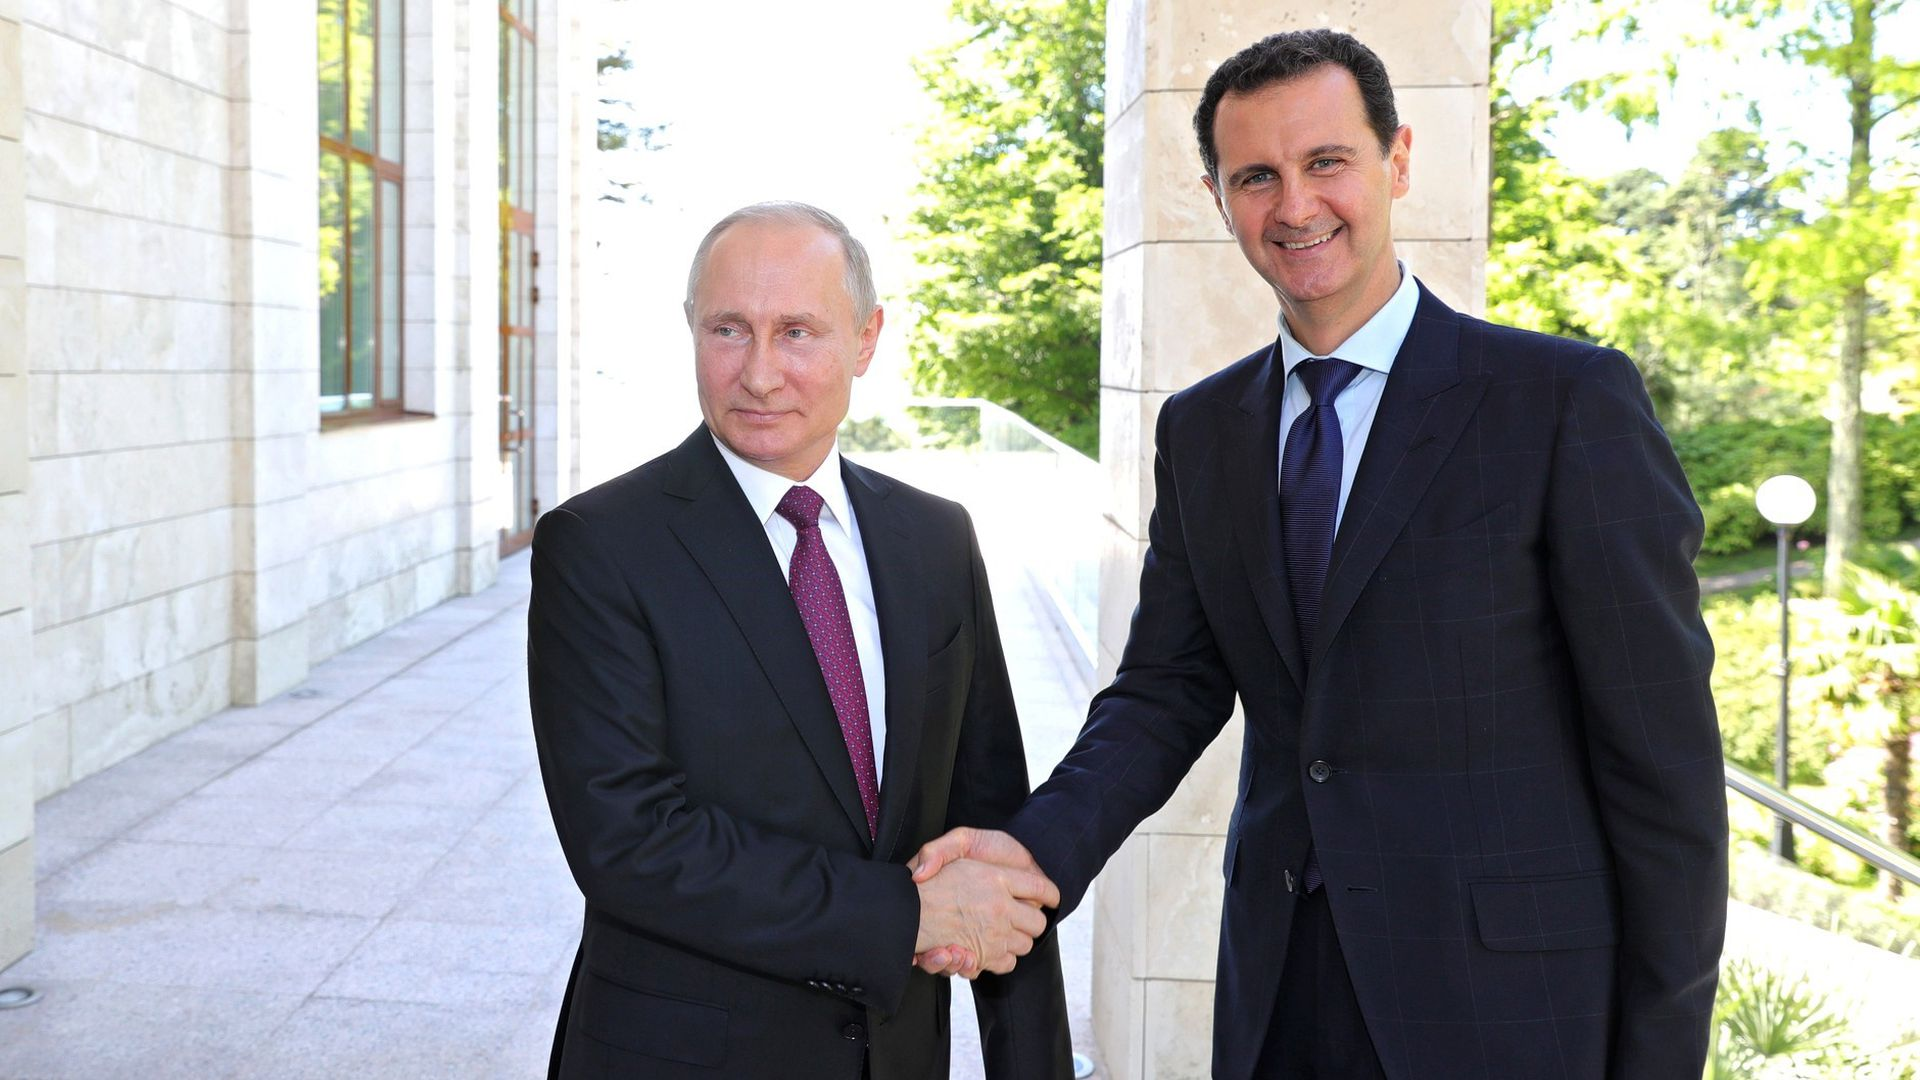 Russian President Vladimir Putin meets President of Syria Bashar Al-Assad in Sochi, Russia, on May 17, 2018.